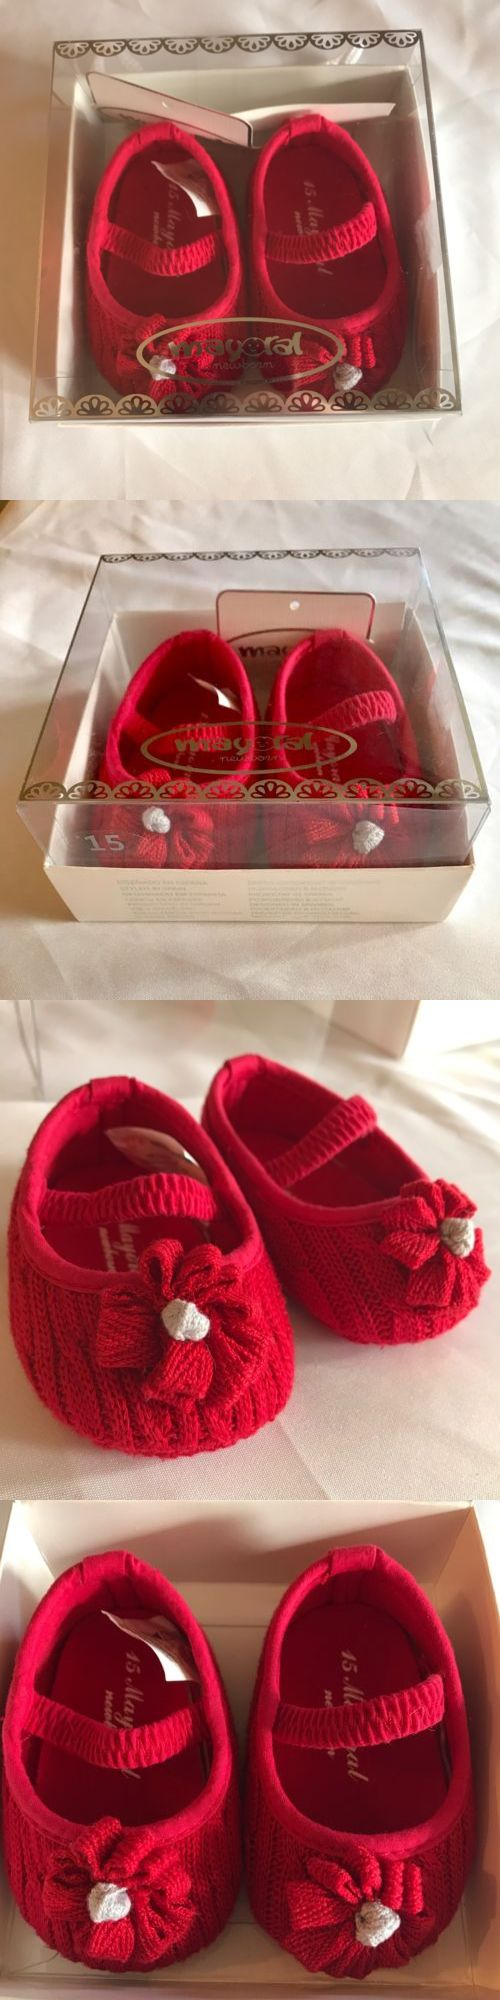 Baby Girls Shoes: Mayoral Eu 15 Us 0 Baby Girls Newborn Infant Red Sweater Crib Shoes BUY IT NOW ONLY: $8.99